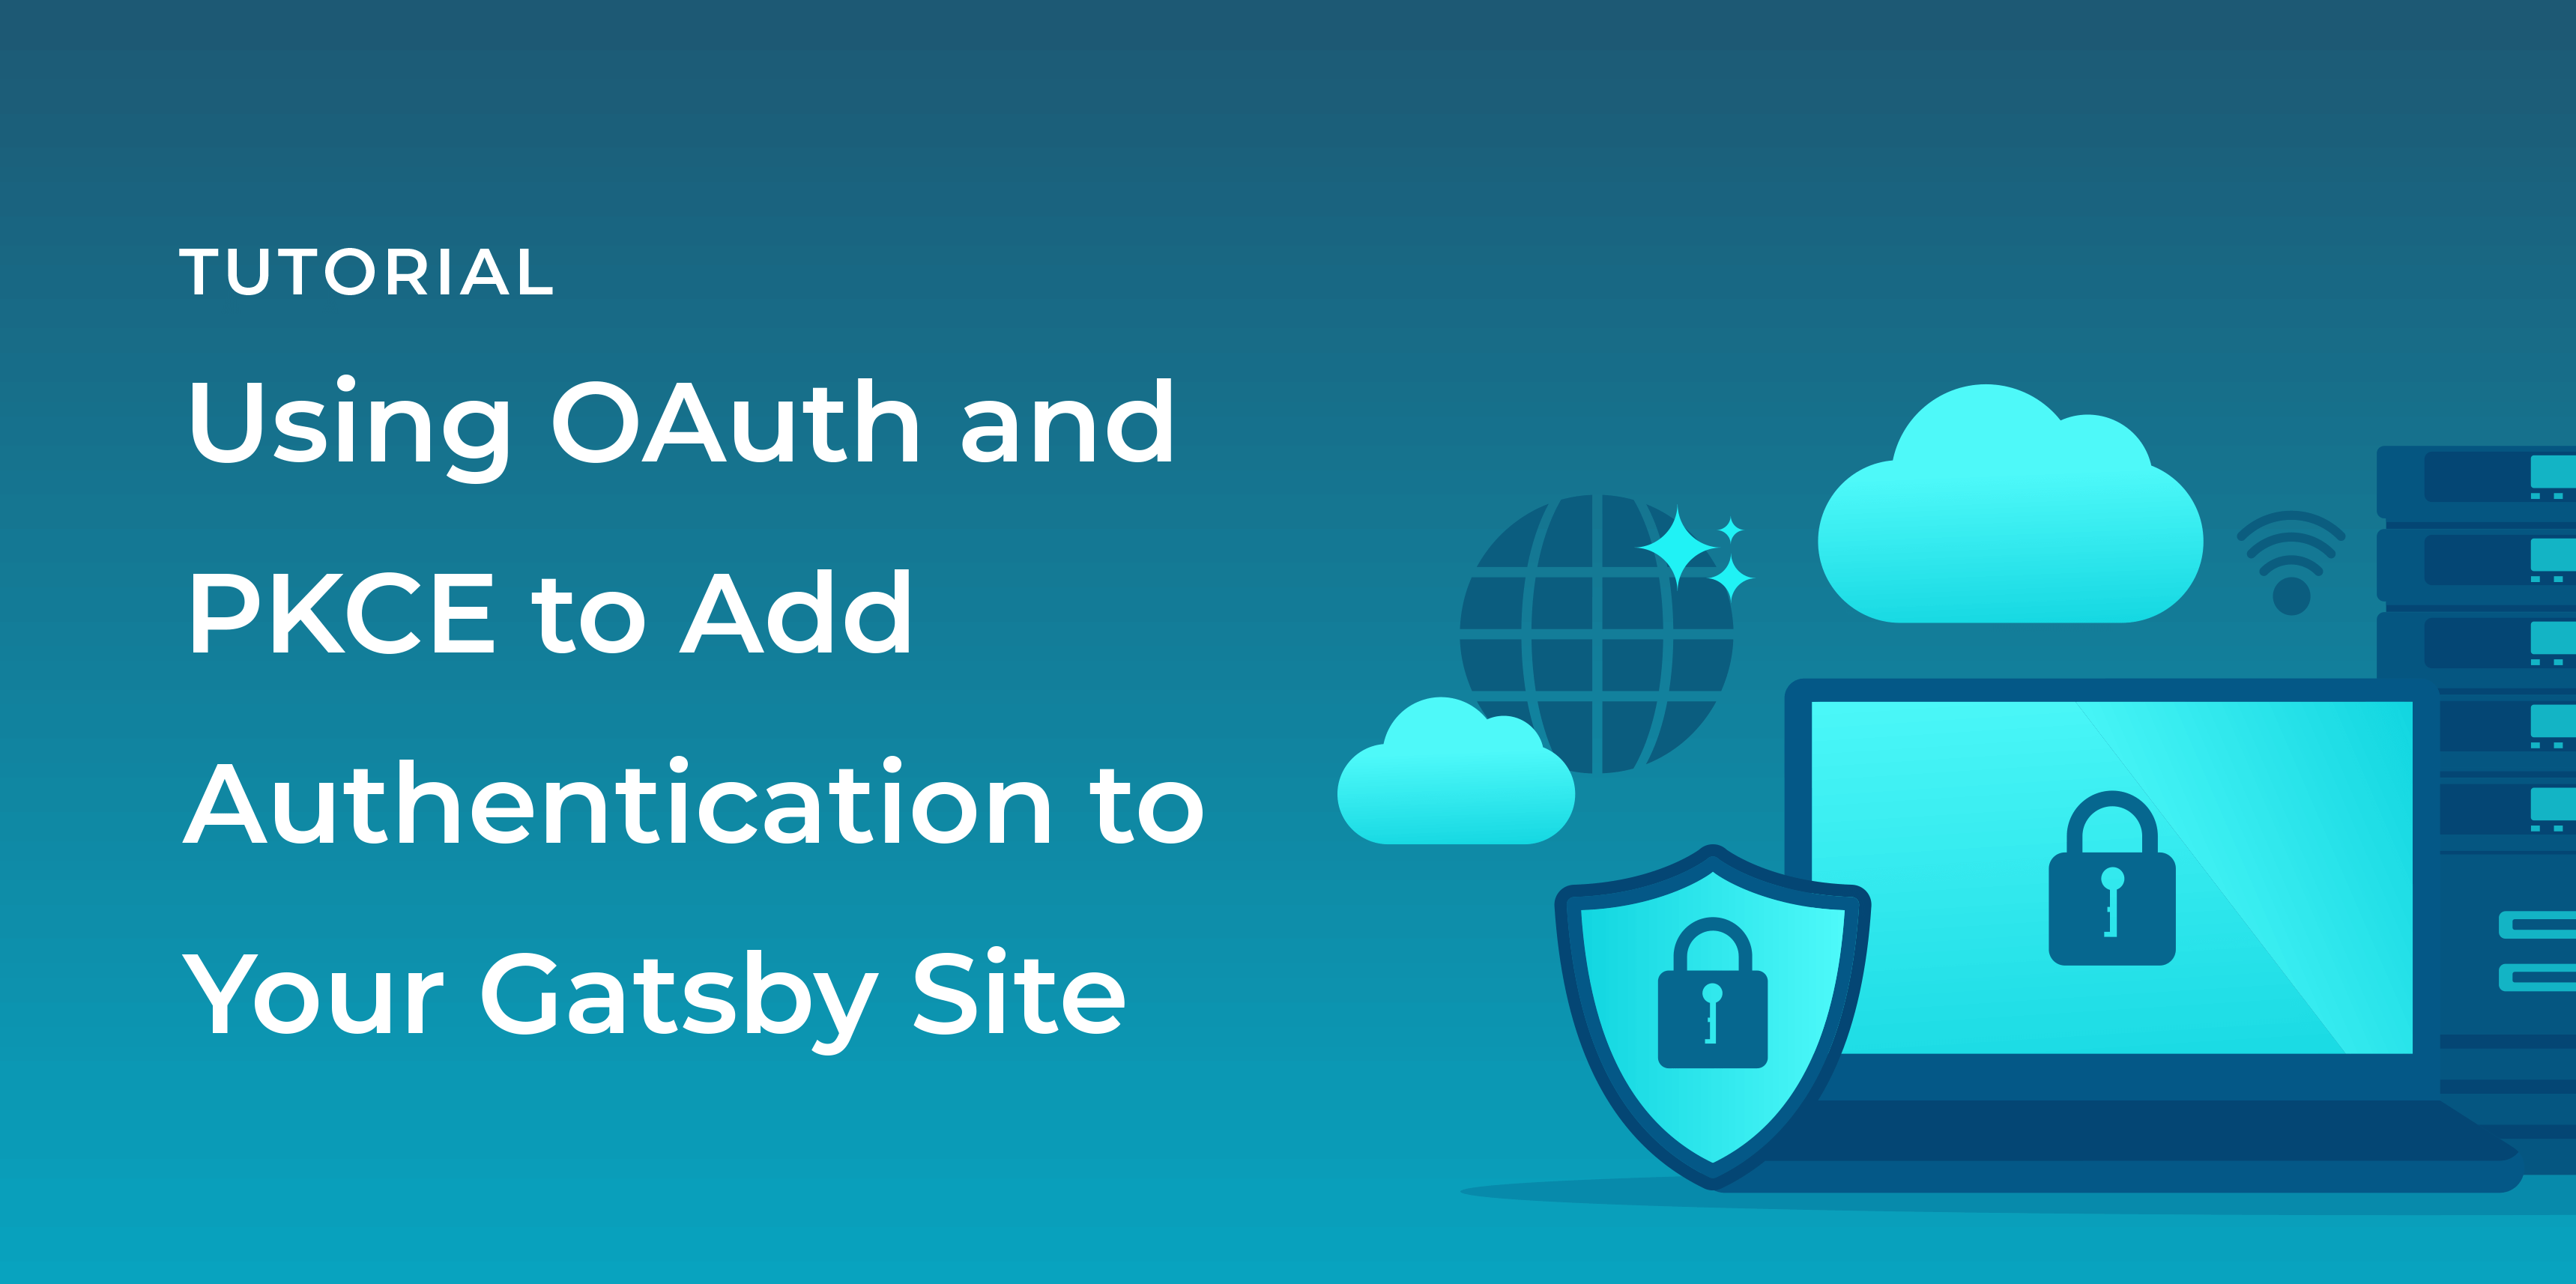 If you want to add authentication to your Gatsby site, FusionAuth combined with the OAuth Authorization Code grant and the PKCE extension, is an excellent solution.